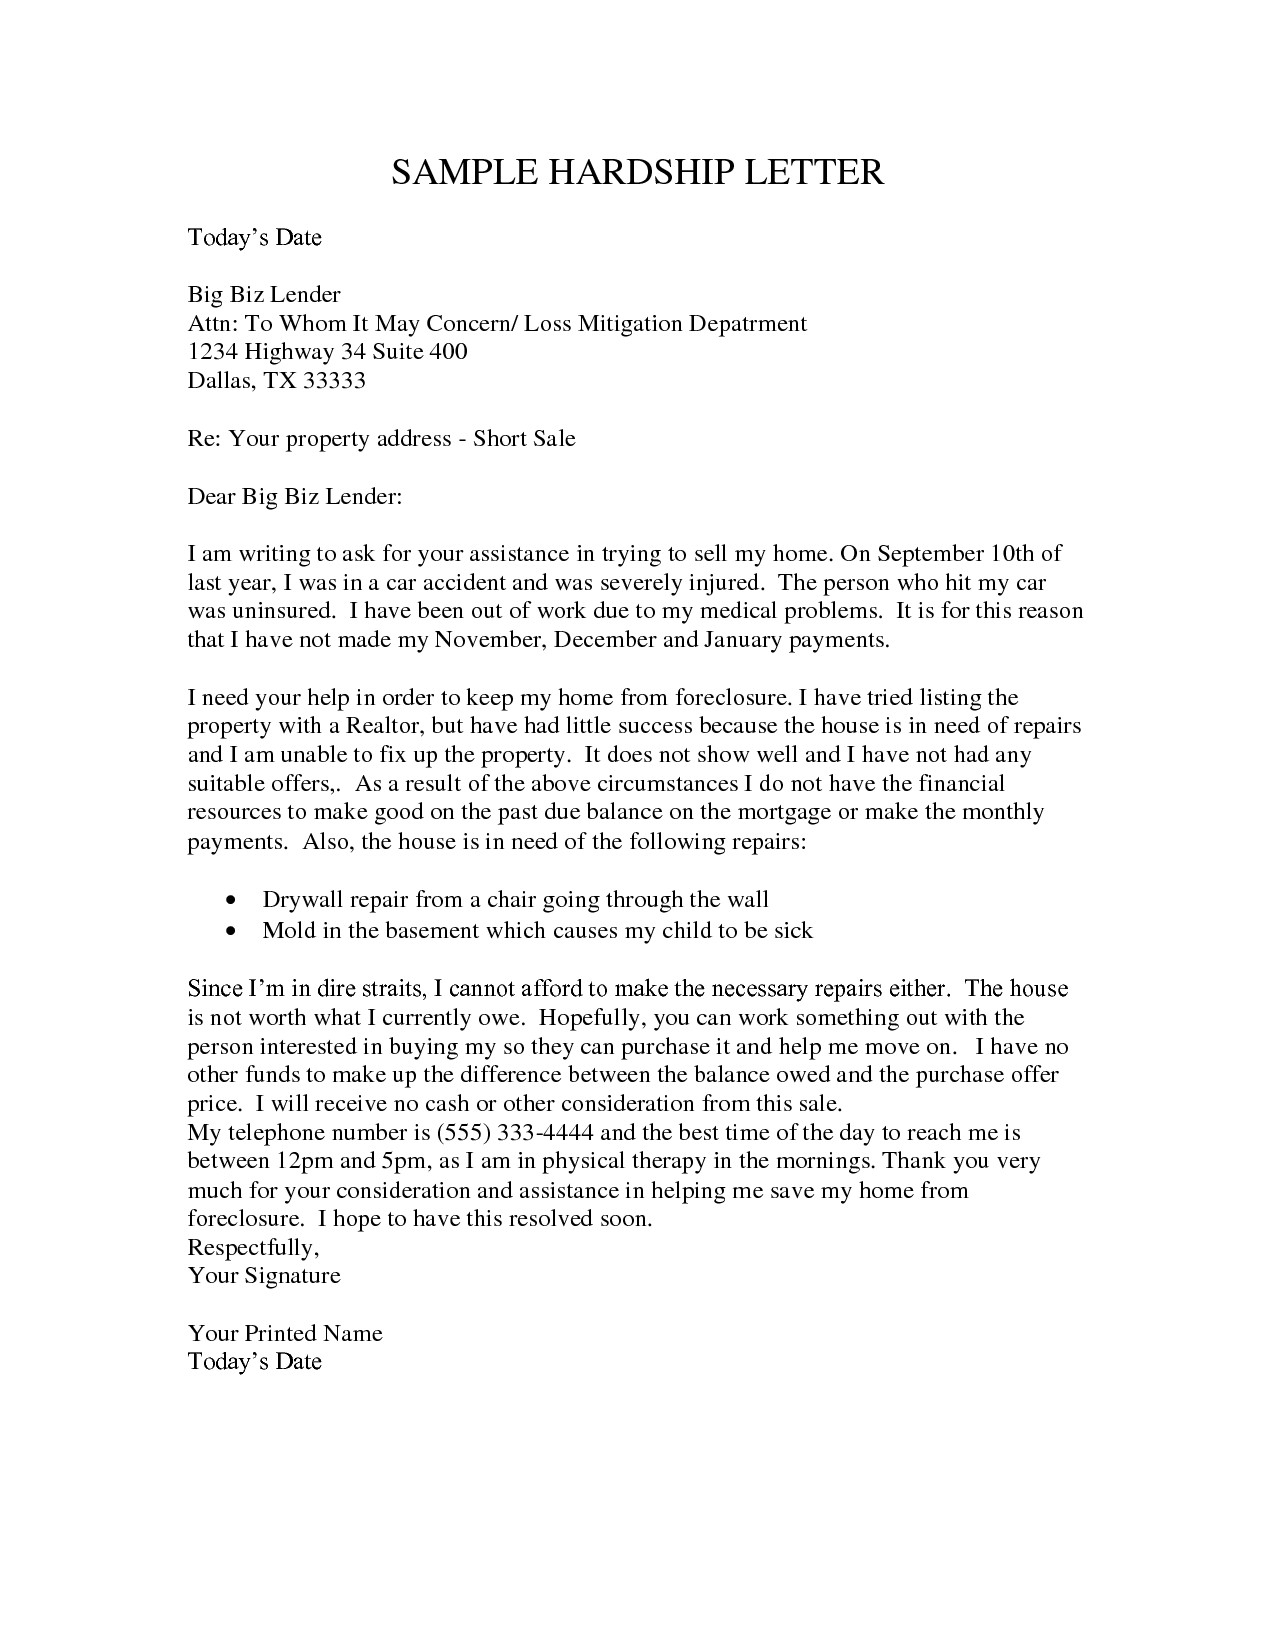 hardship-letter-for-loan-modification-template-12  K Hardship Letter Template on